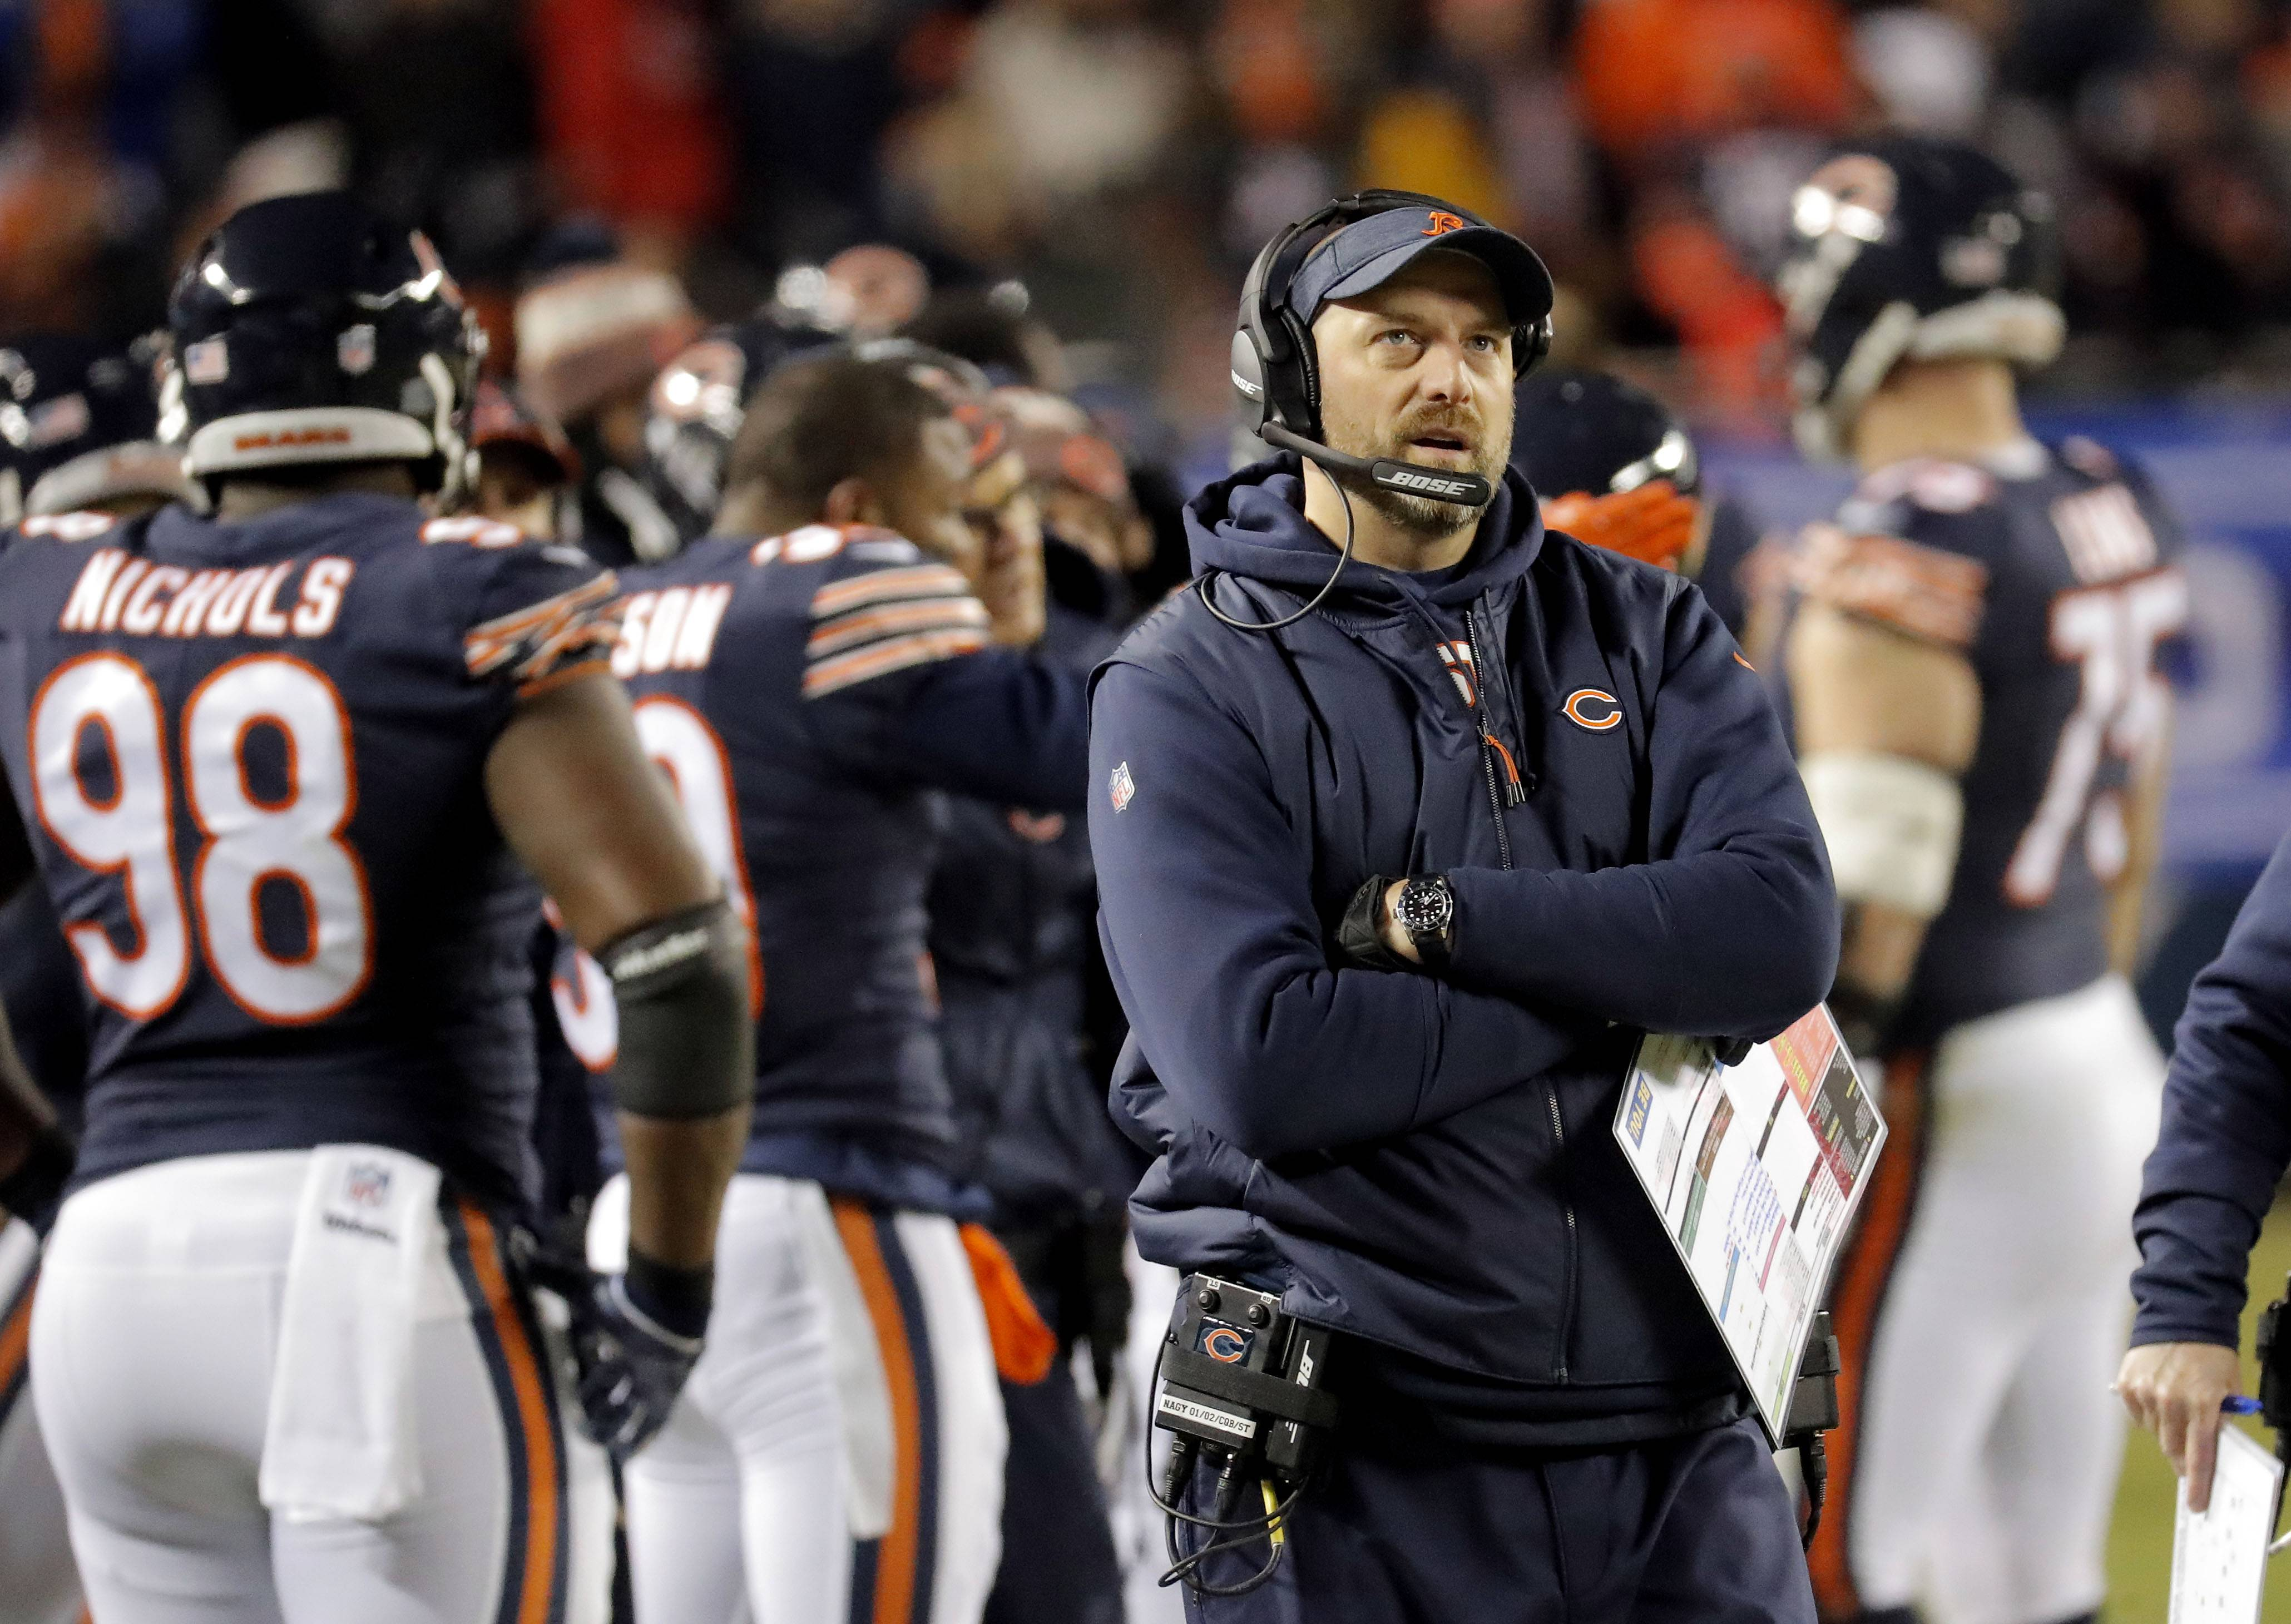 Bears coach Matt Nagy, shown here during the Bears loss to the Eagles in the NFC wild card game, was named NFL Coach of the Year by the Pro Football Writers of America.